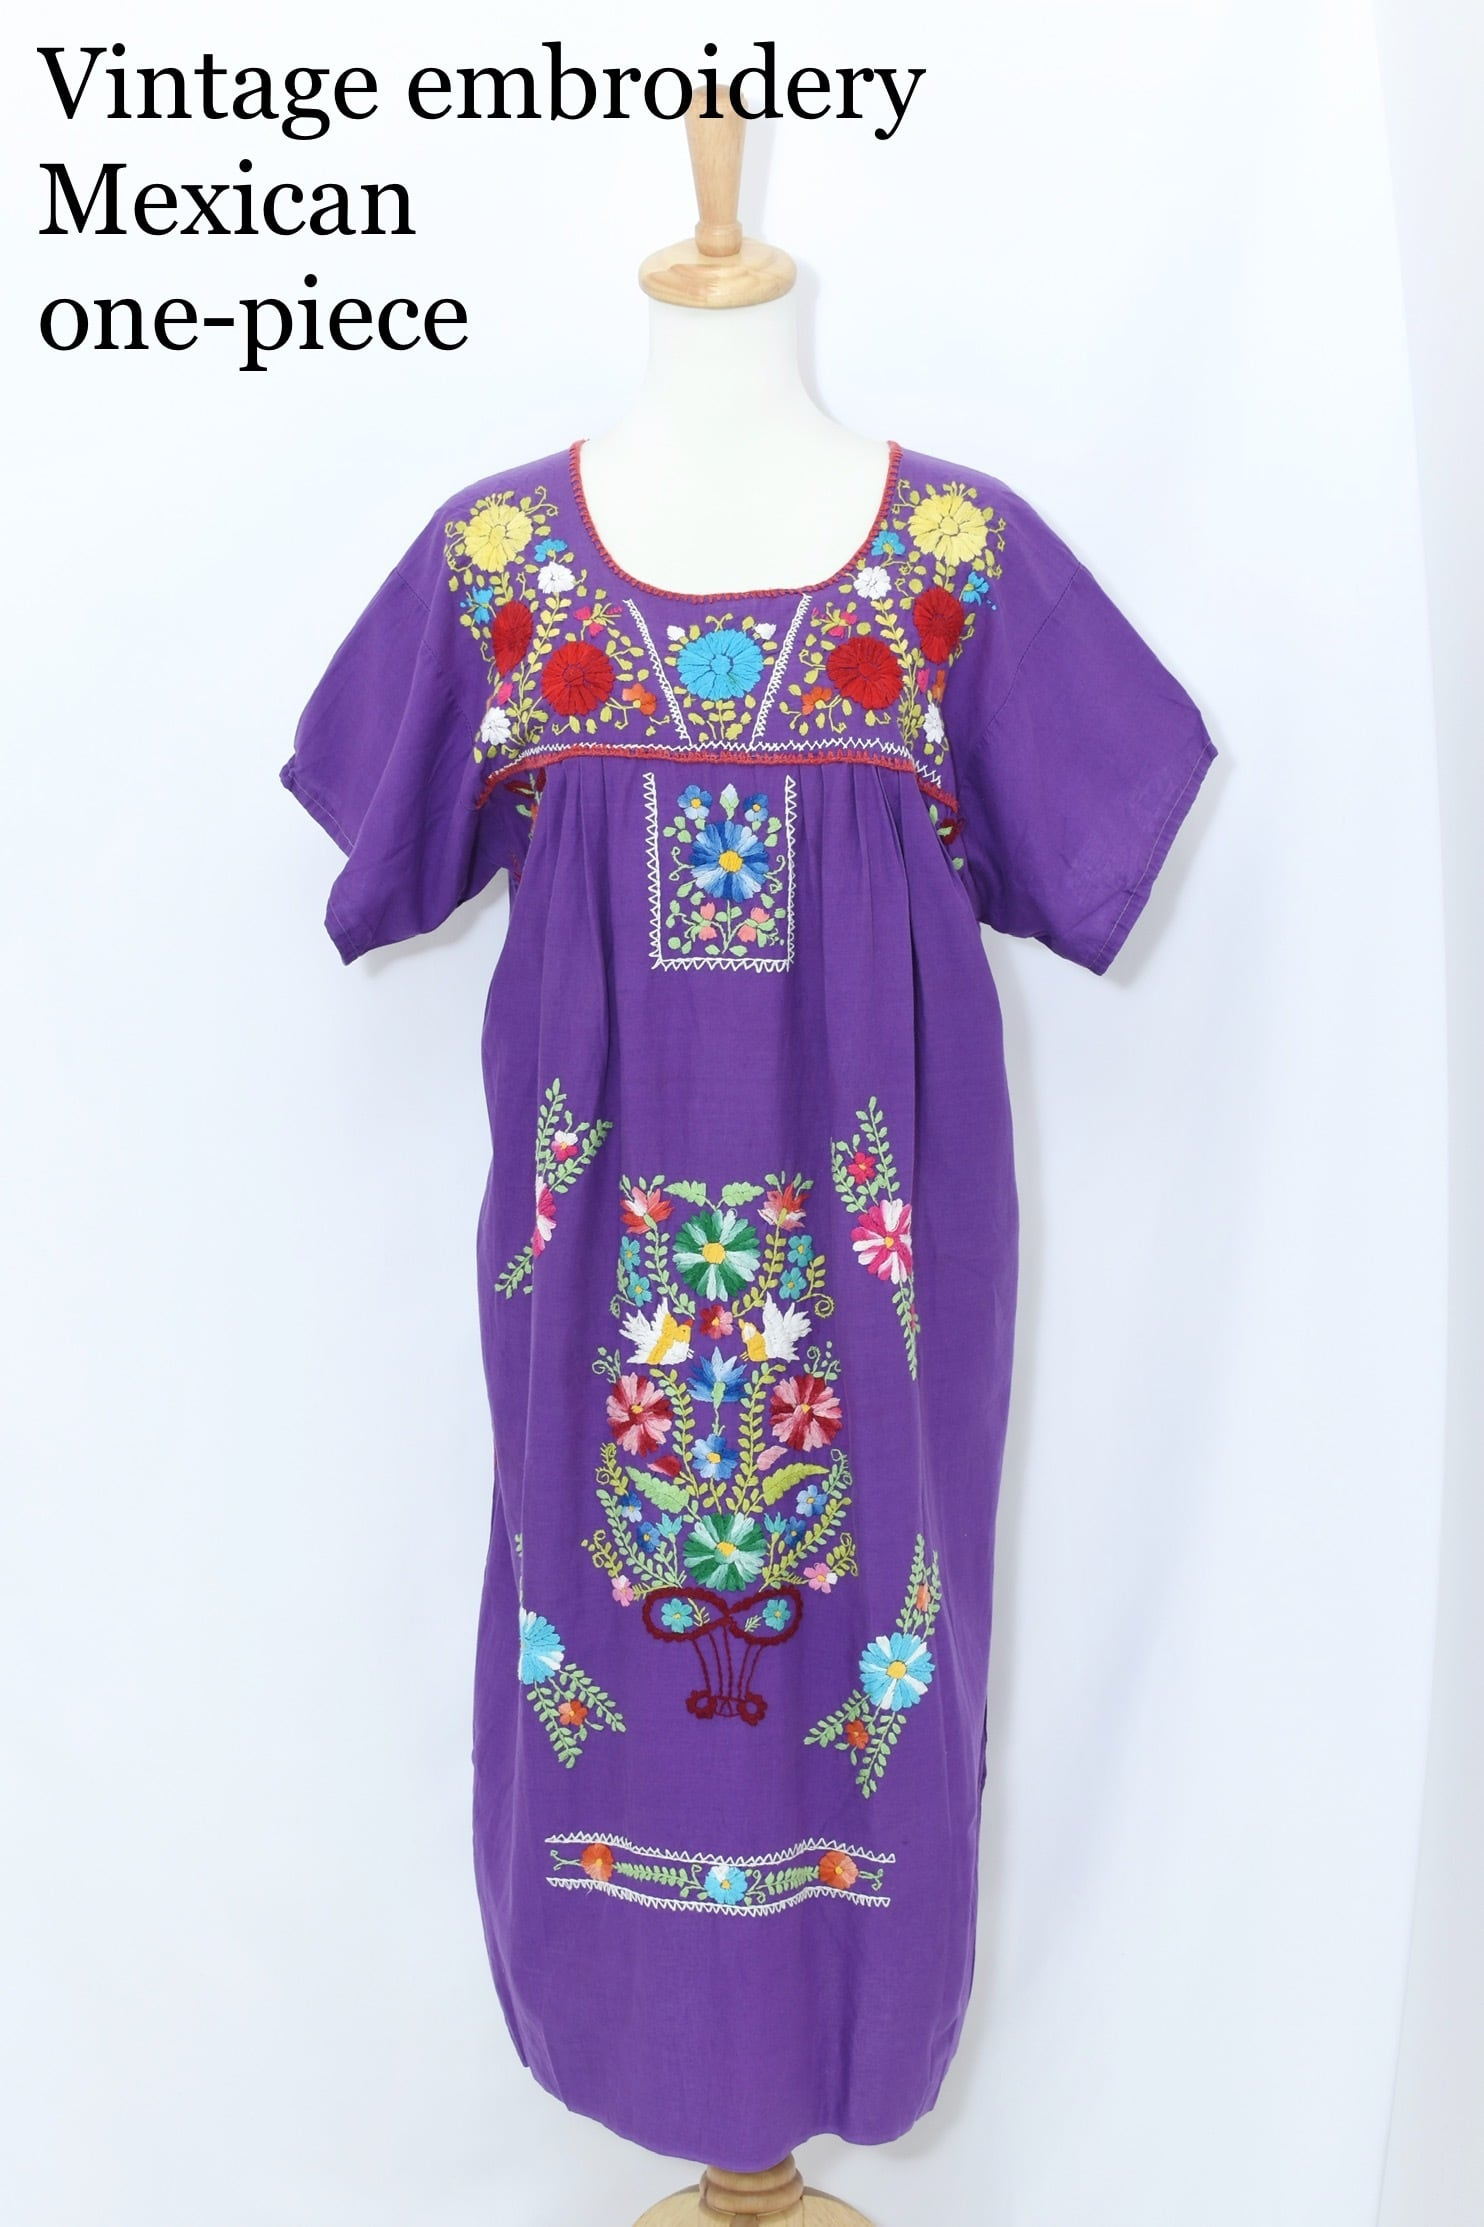 vintage embroidery Mexican one-piece PUR